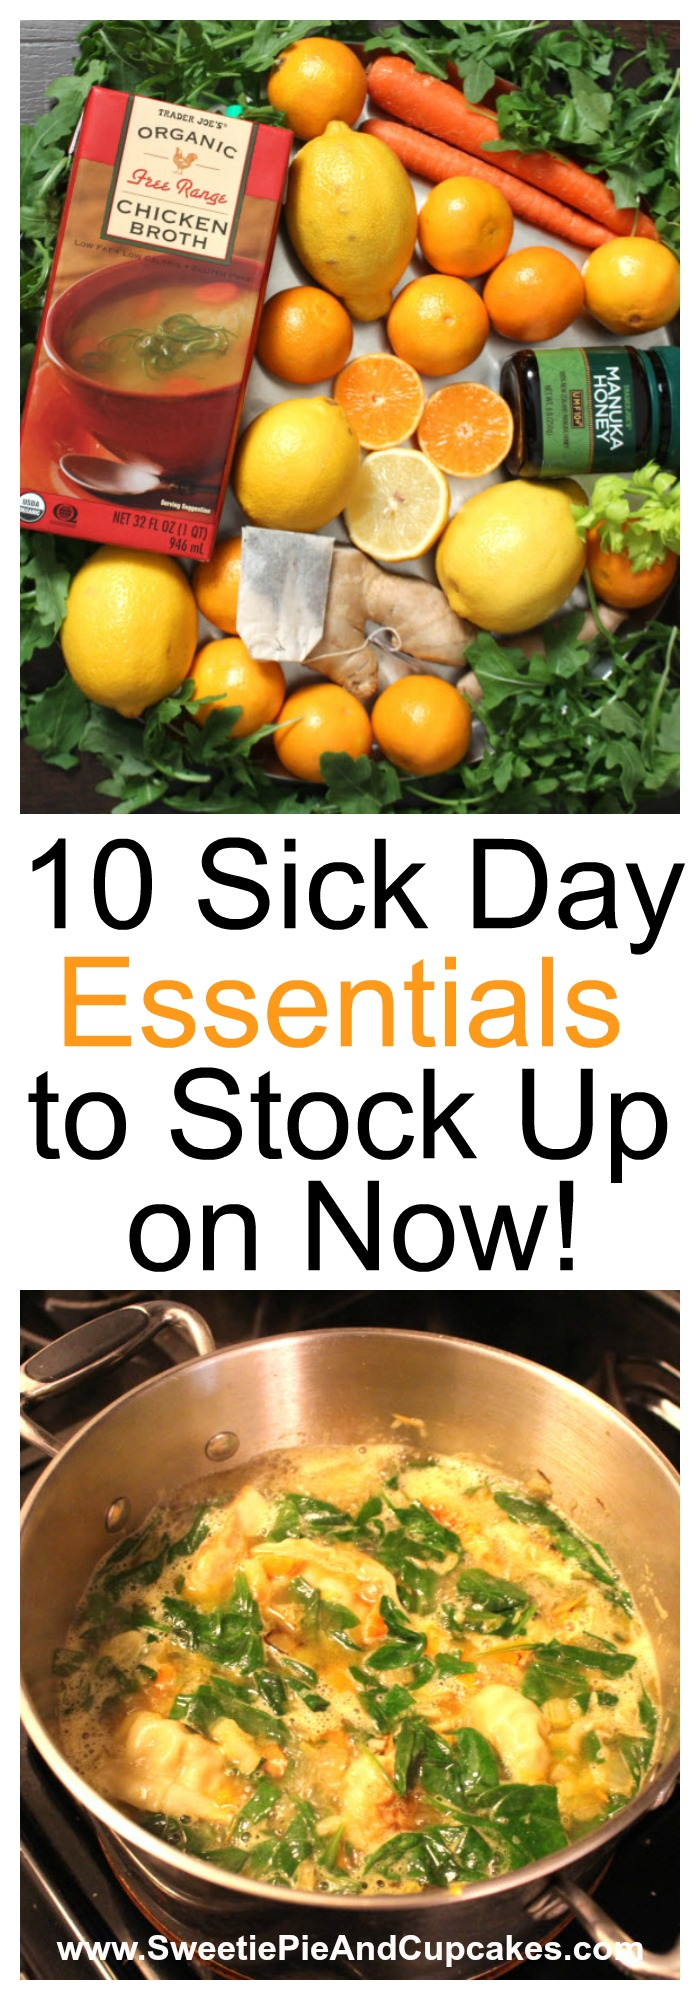 Sick day essentials to stock up on now